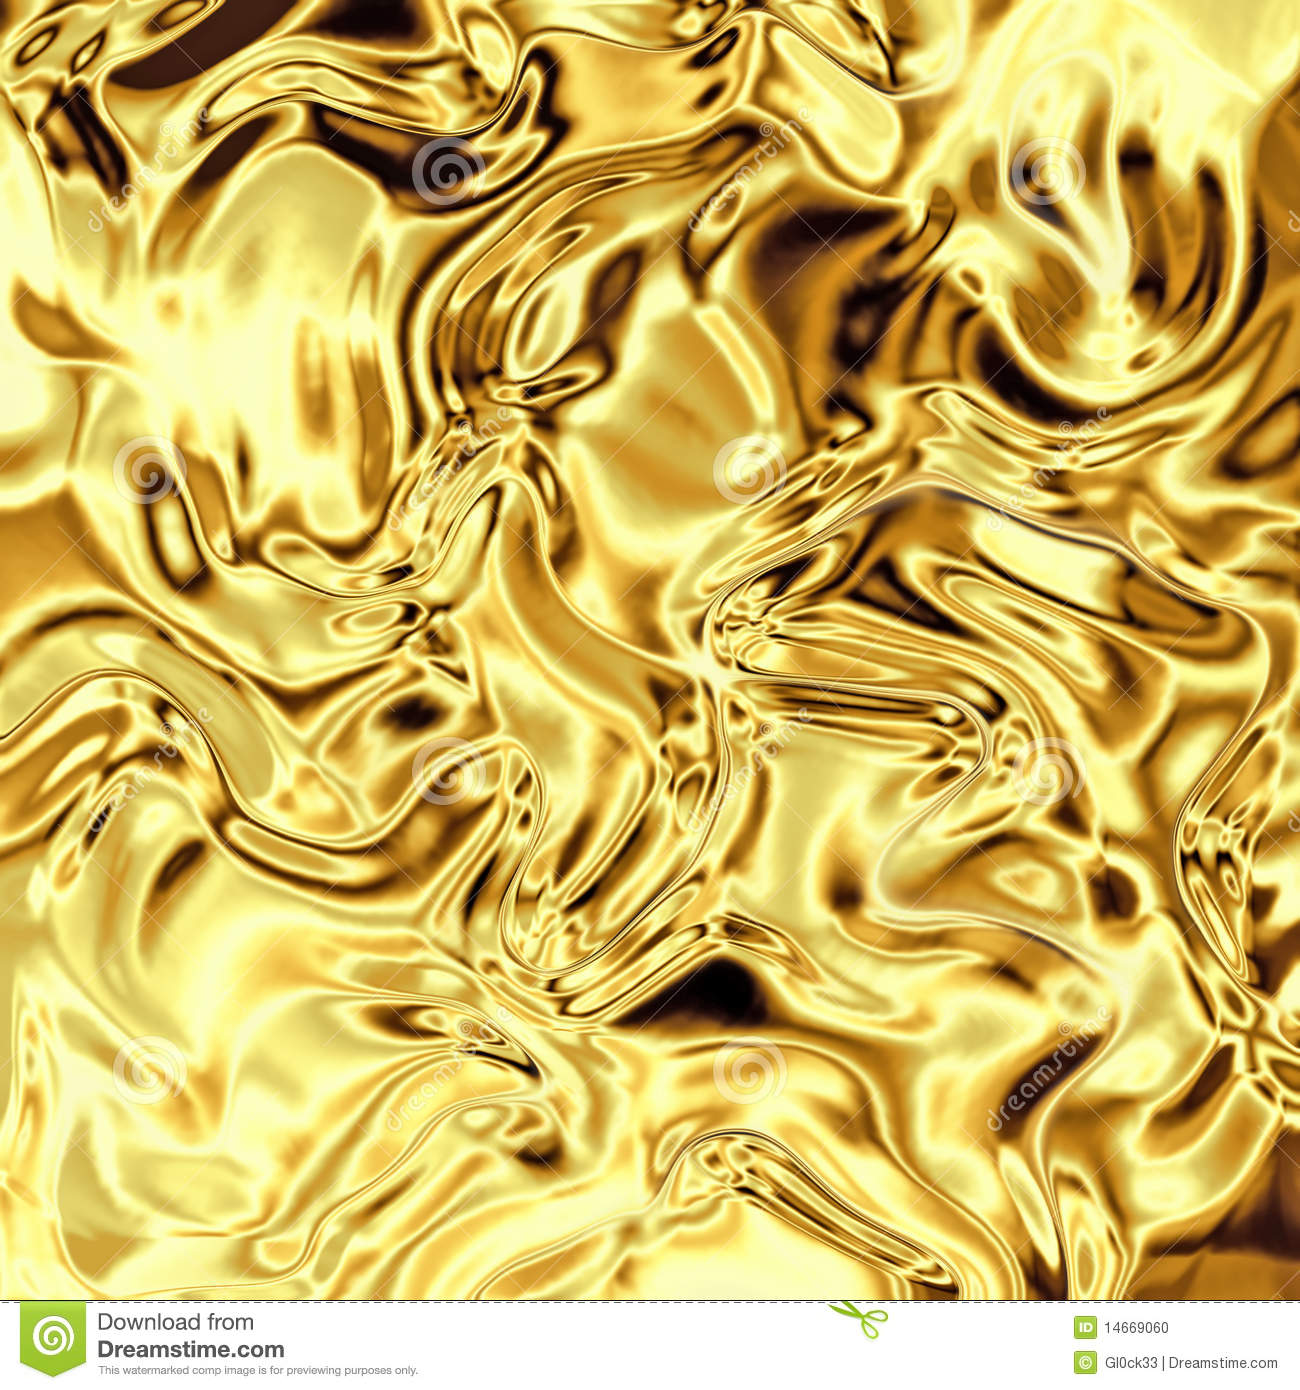 Black Diamond Plate Wallpaper Gold Foil Curved Stock Illustration Image Of Abstract